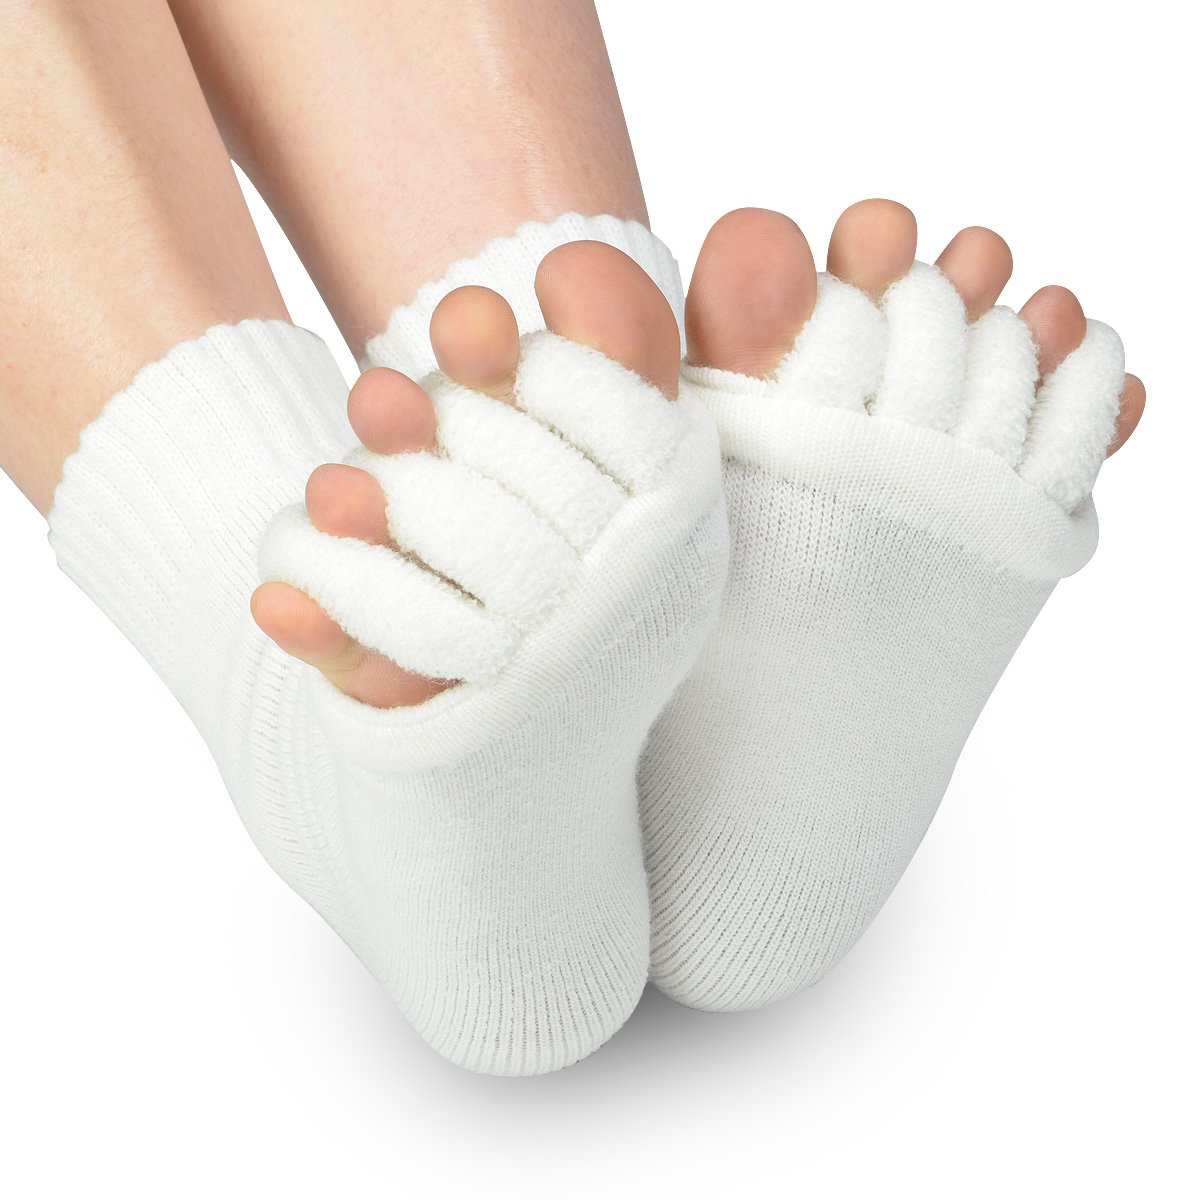 DevsWear Alignment Socks Open Five Toes Separator Toe Spacer Relaxing Comfort Tendon Pain Relief Comfy Foot Sock Yoga Gym Pedicure